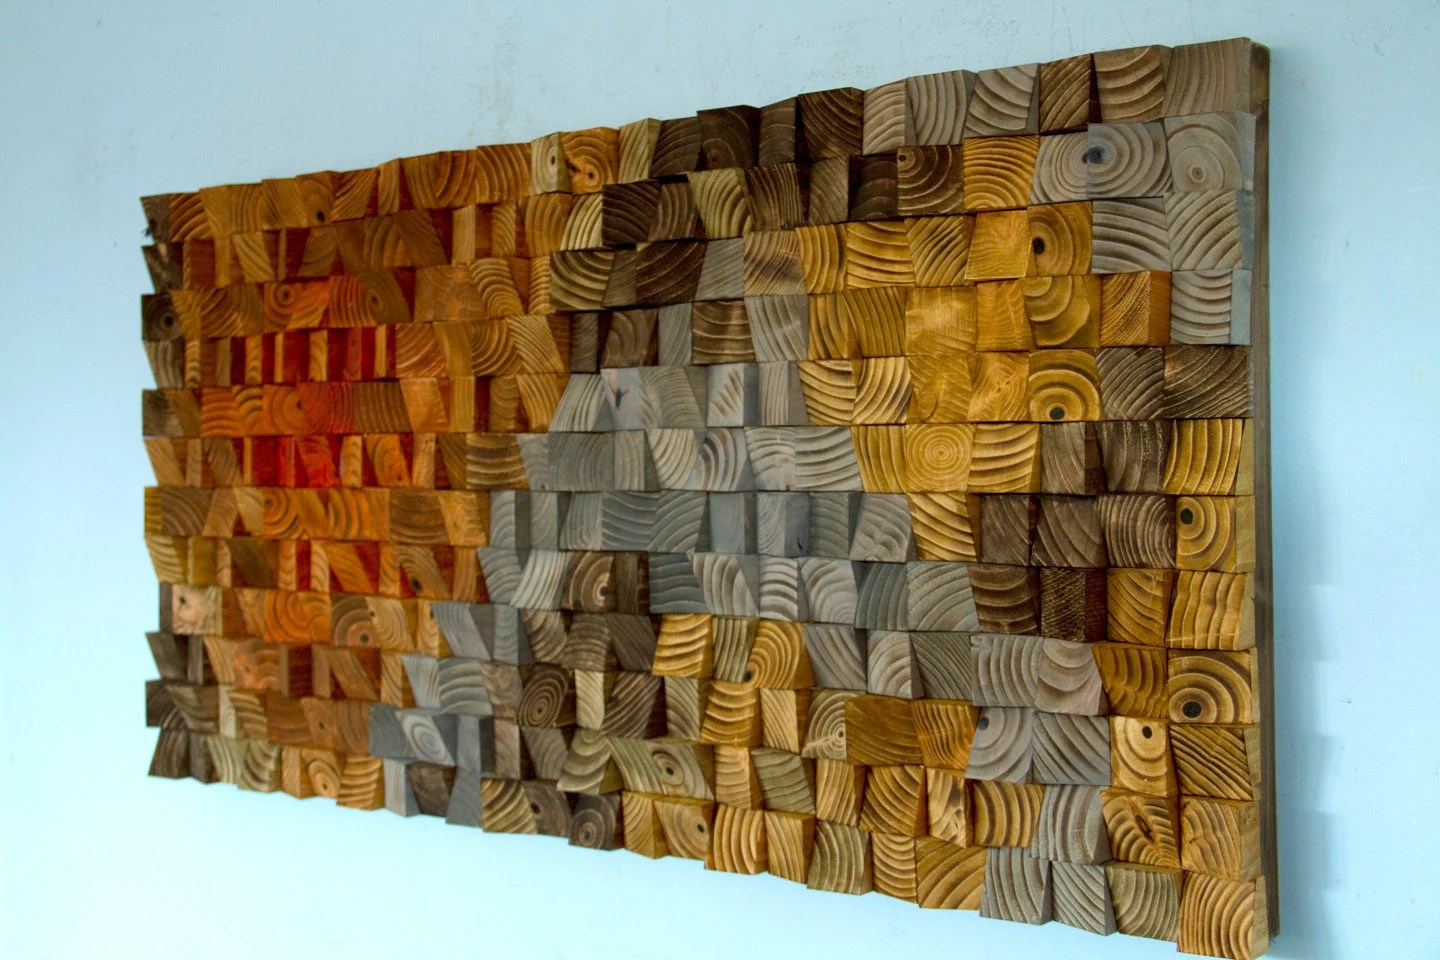 Abstract Wood Wall Art Rustic Wood Wall Art Abstract Wood Art Sculpture Reclaimed Wood